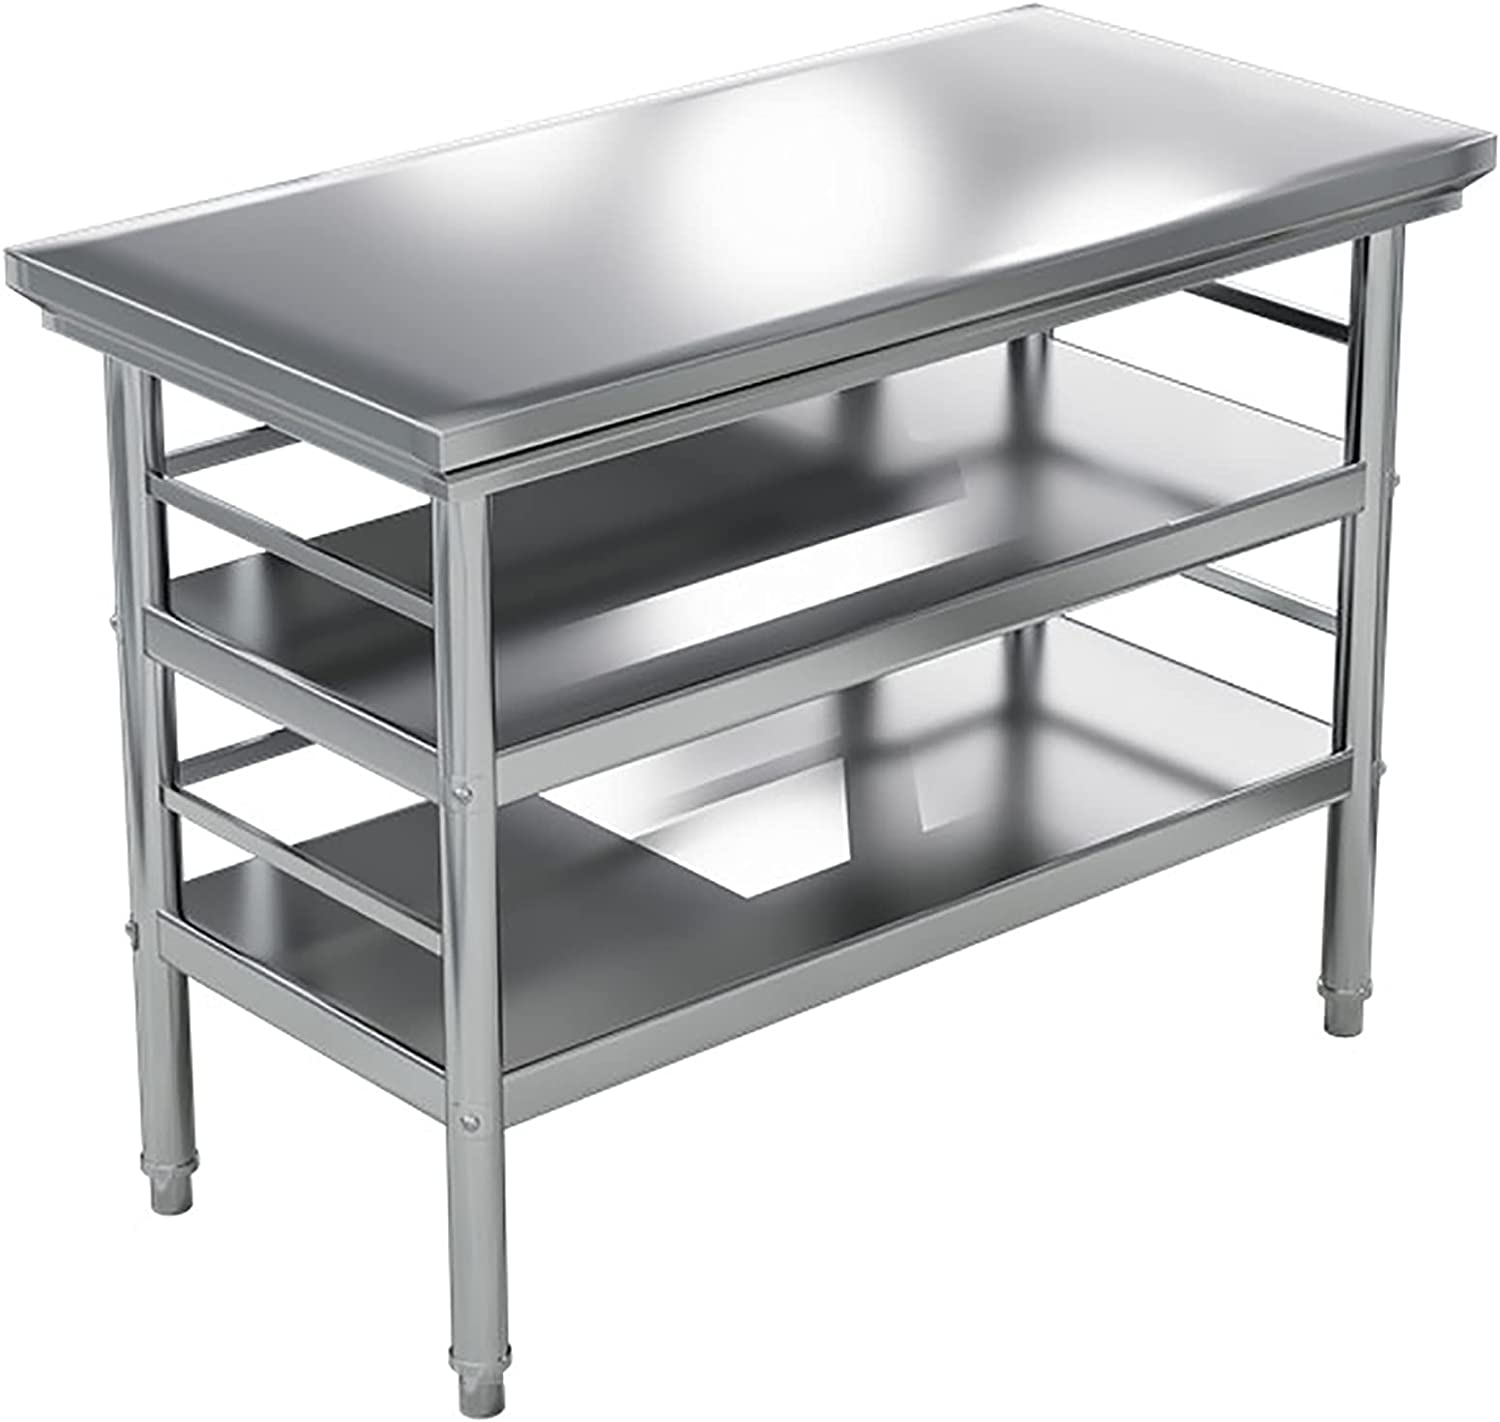 ZHIQ 3-Tier Stainless Steel Commercial Table wi Indefinitely Prep Popular brand Kichen Work